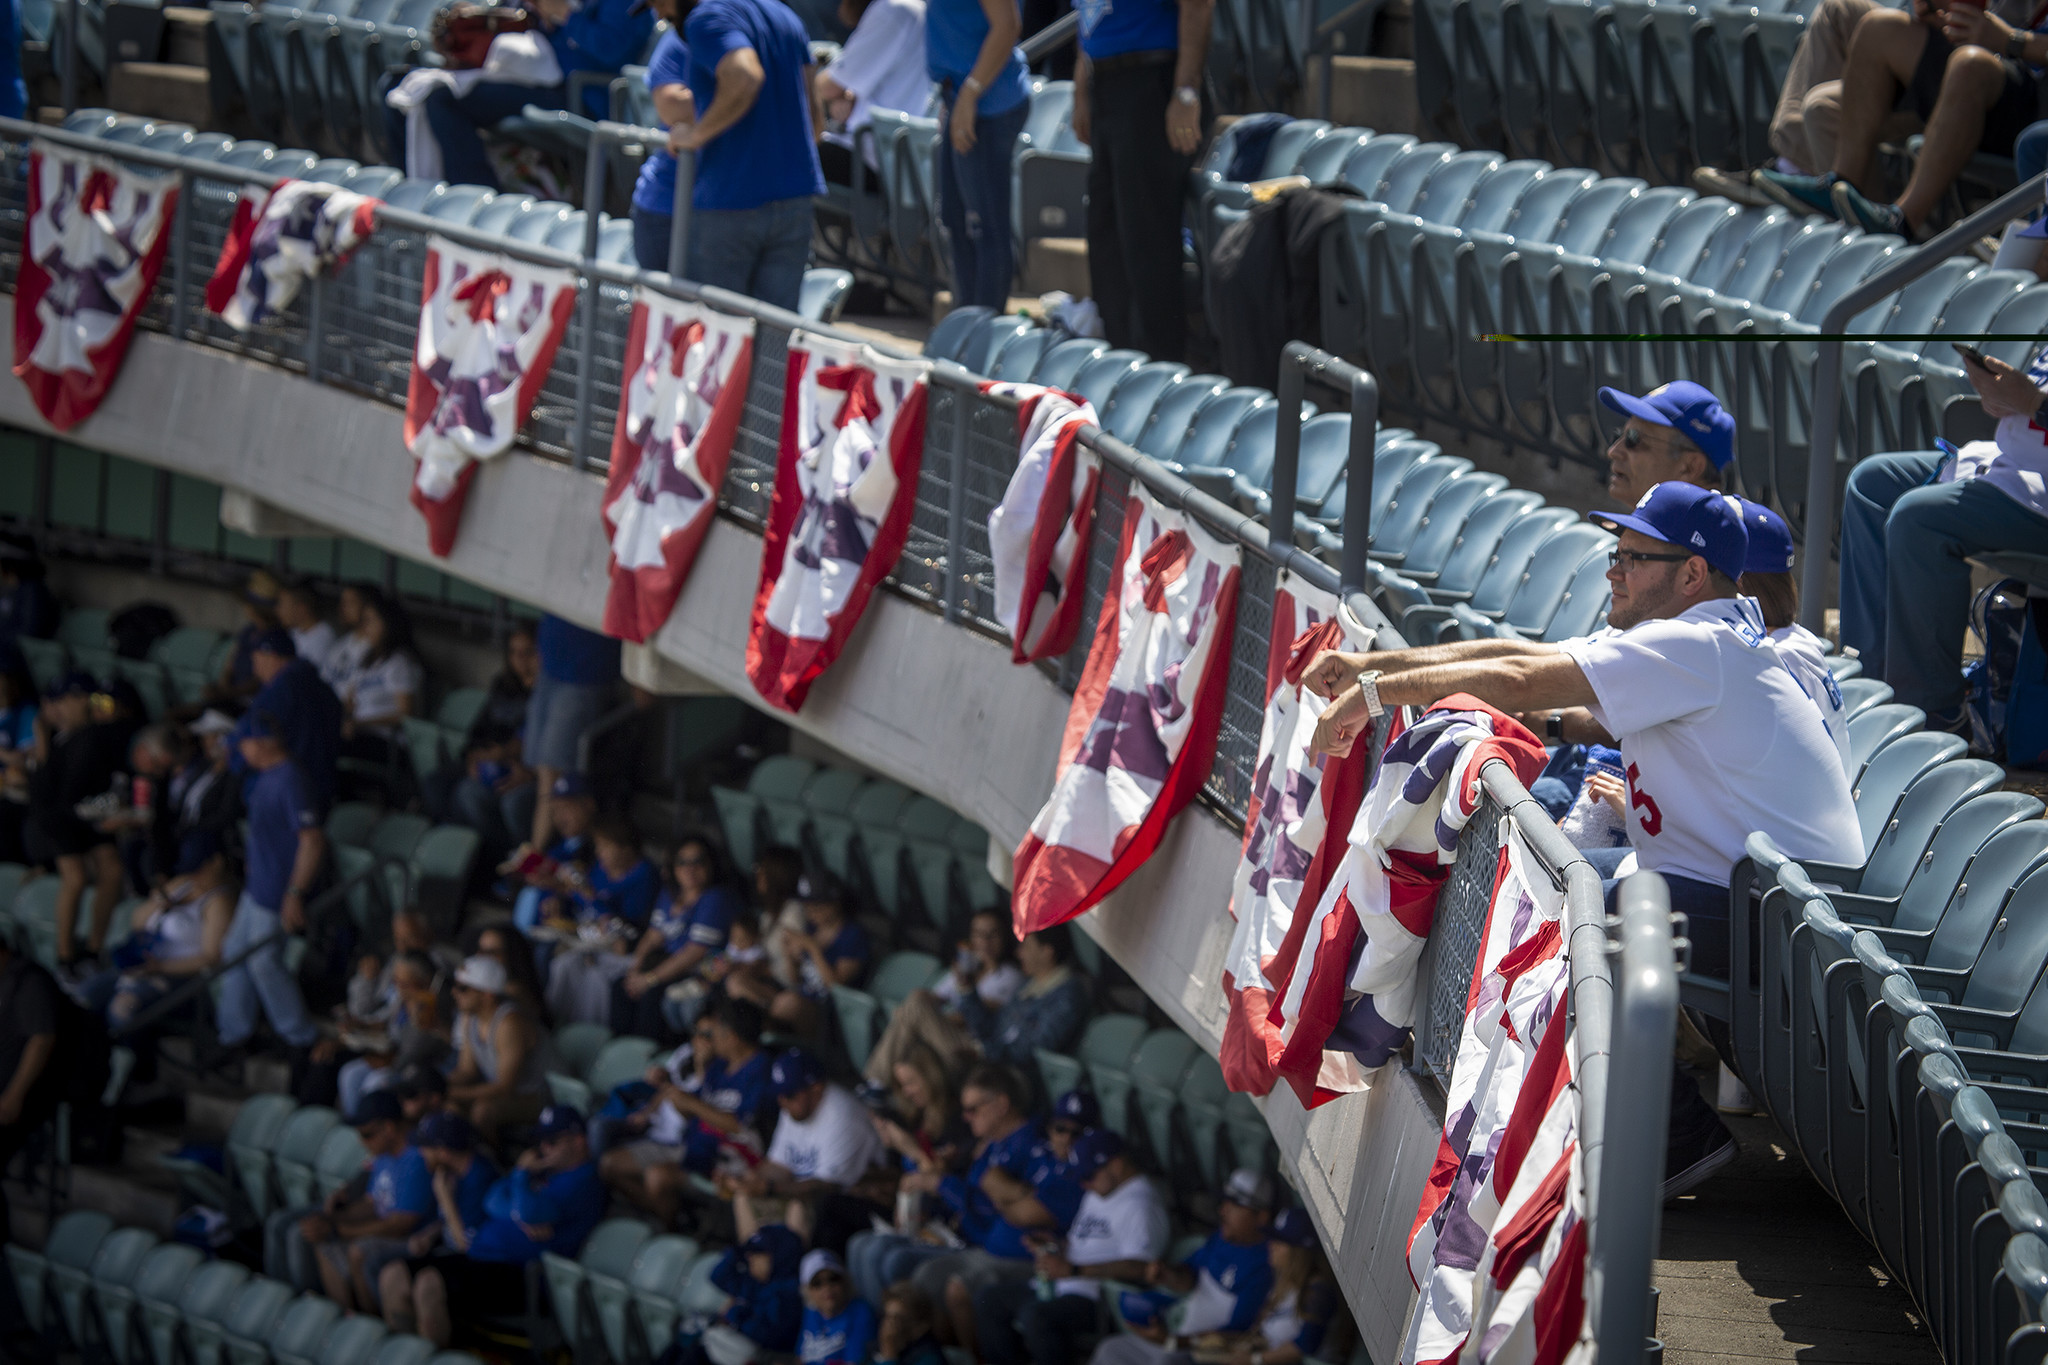 LOS ANGELES, CALIF. -- THURSDAY, MARCH 28, 2019: Dodgers fans celebrate Opening Day as the Dodgers p